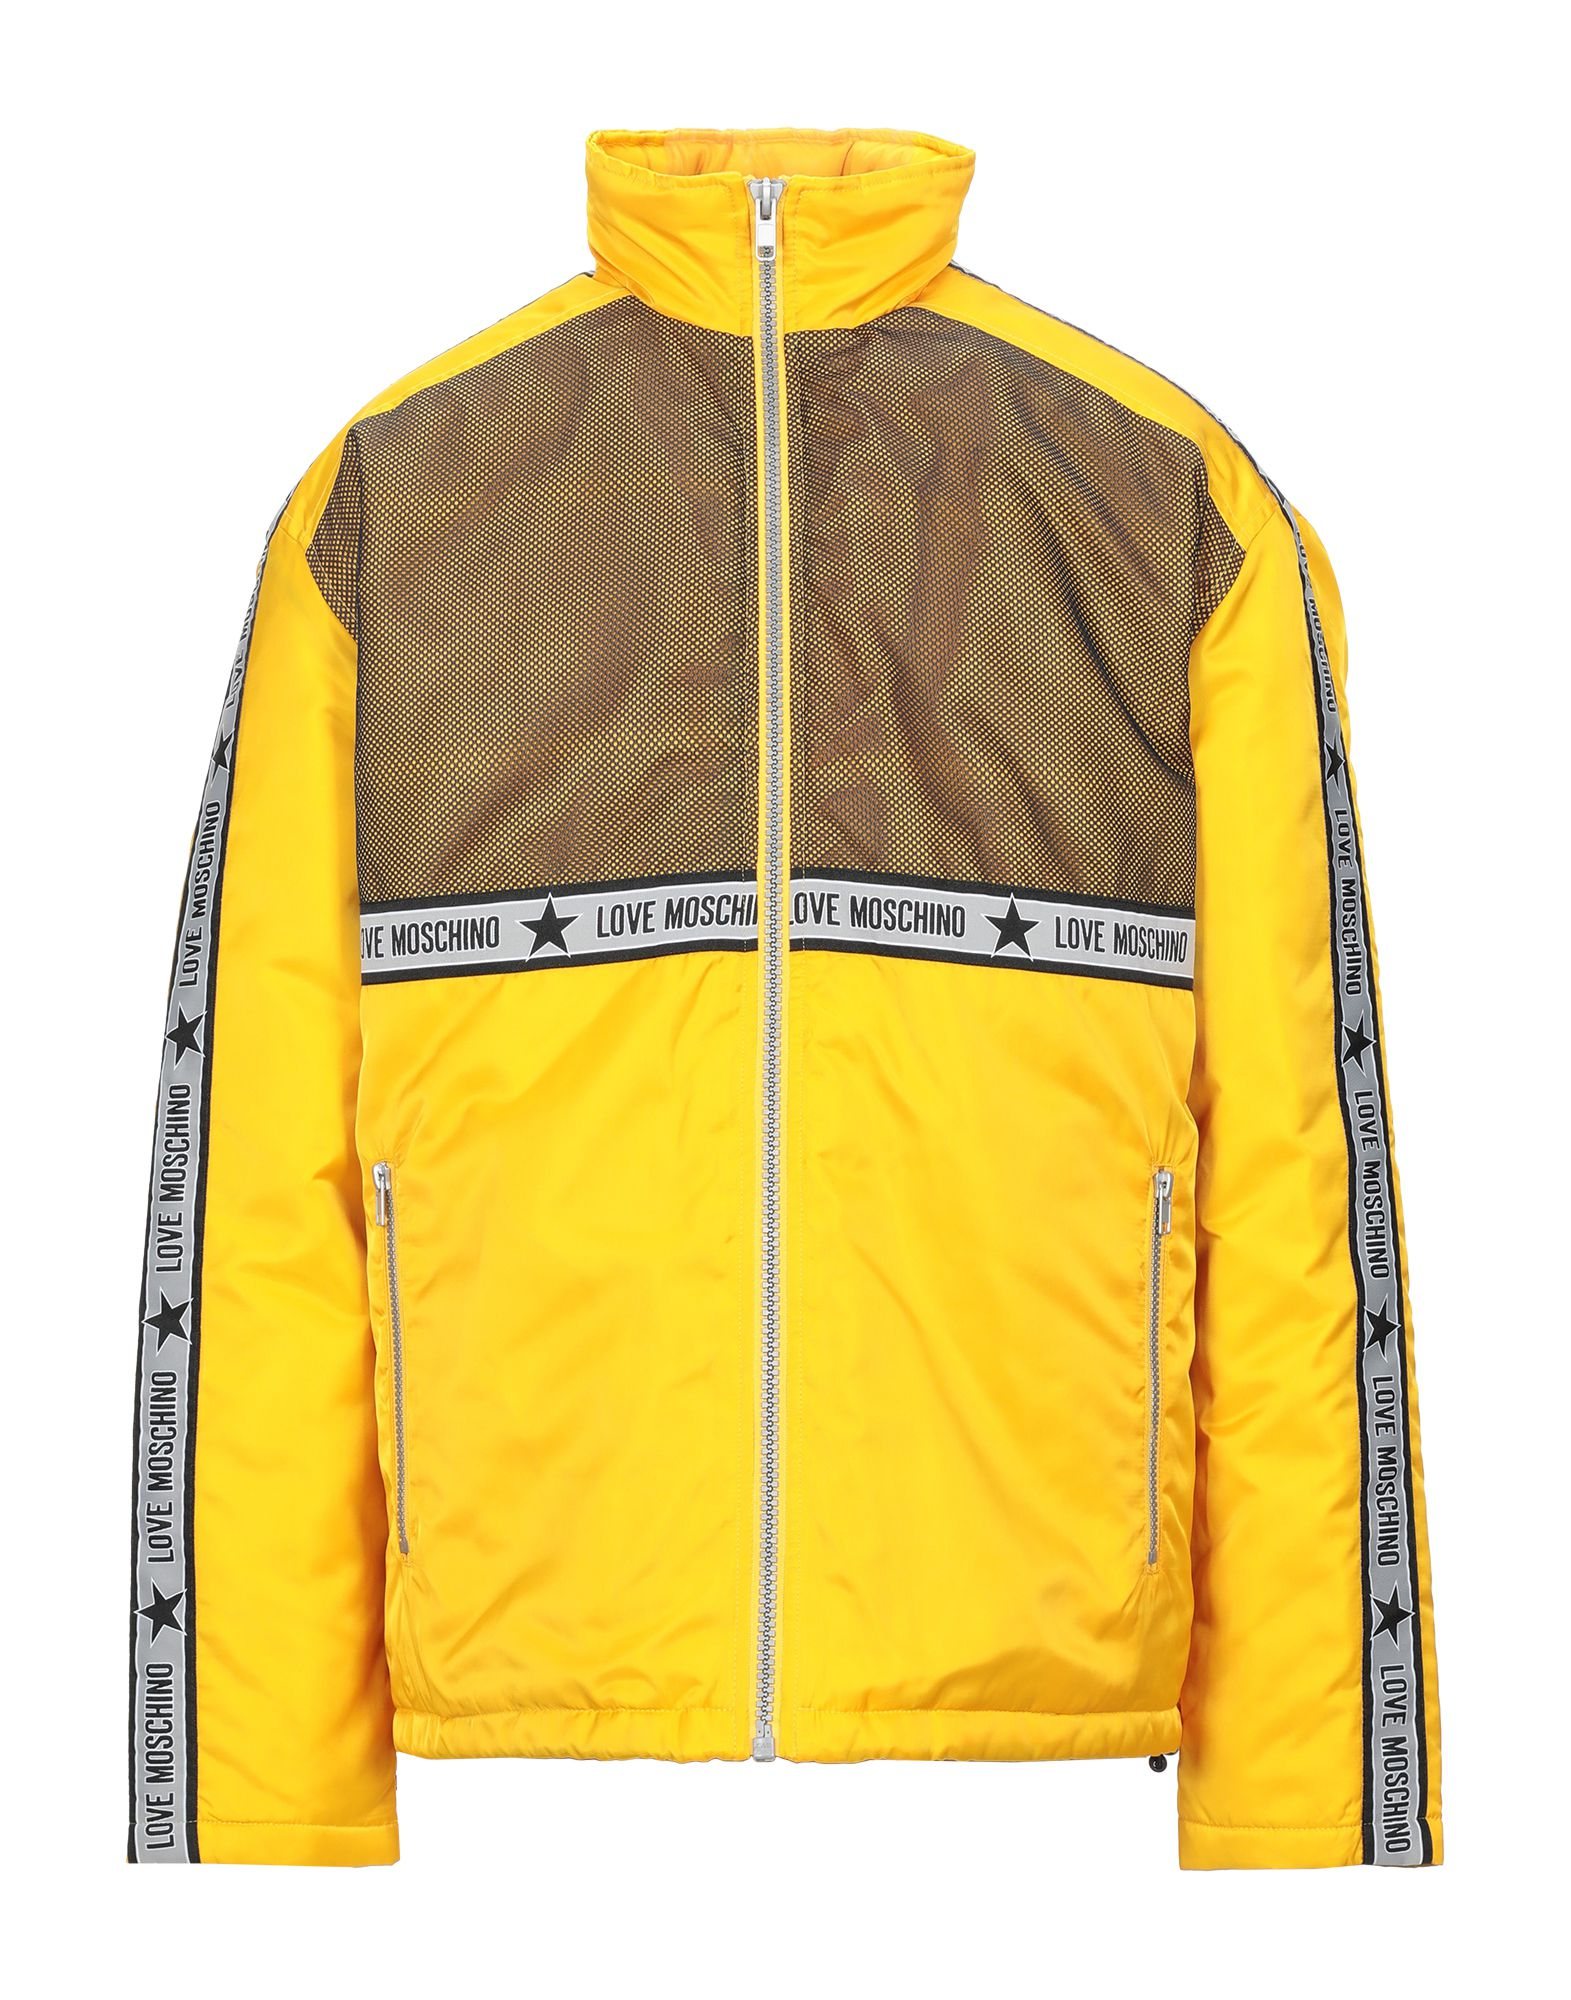 LOVE MOSCHINO Synthetic Down Jackets - Item 41957464